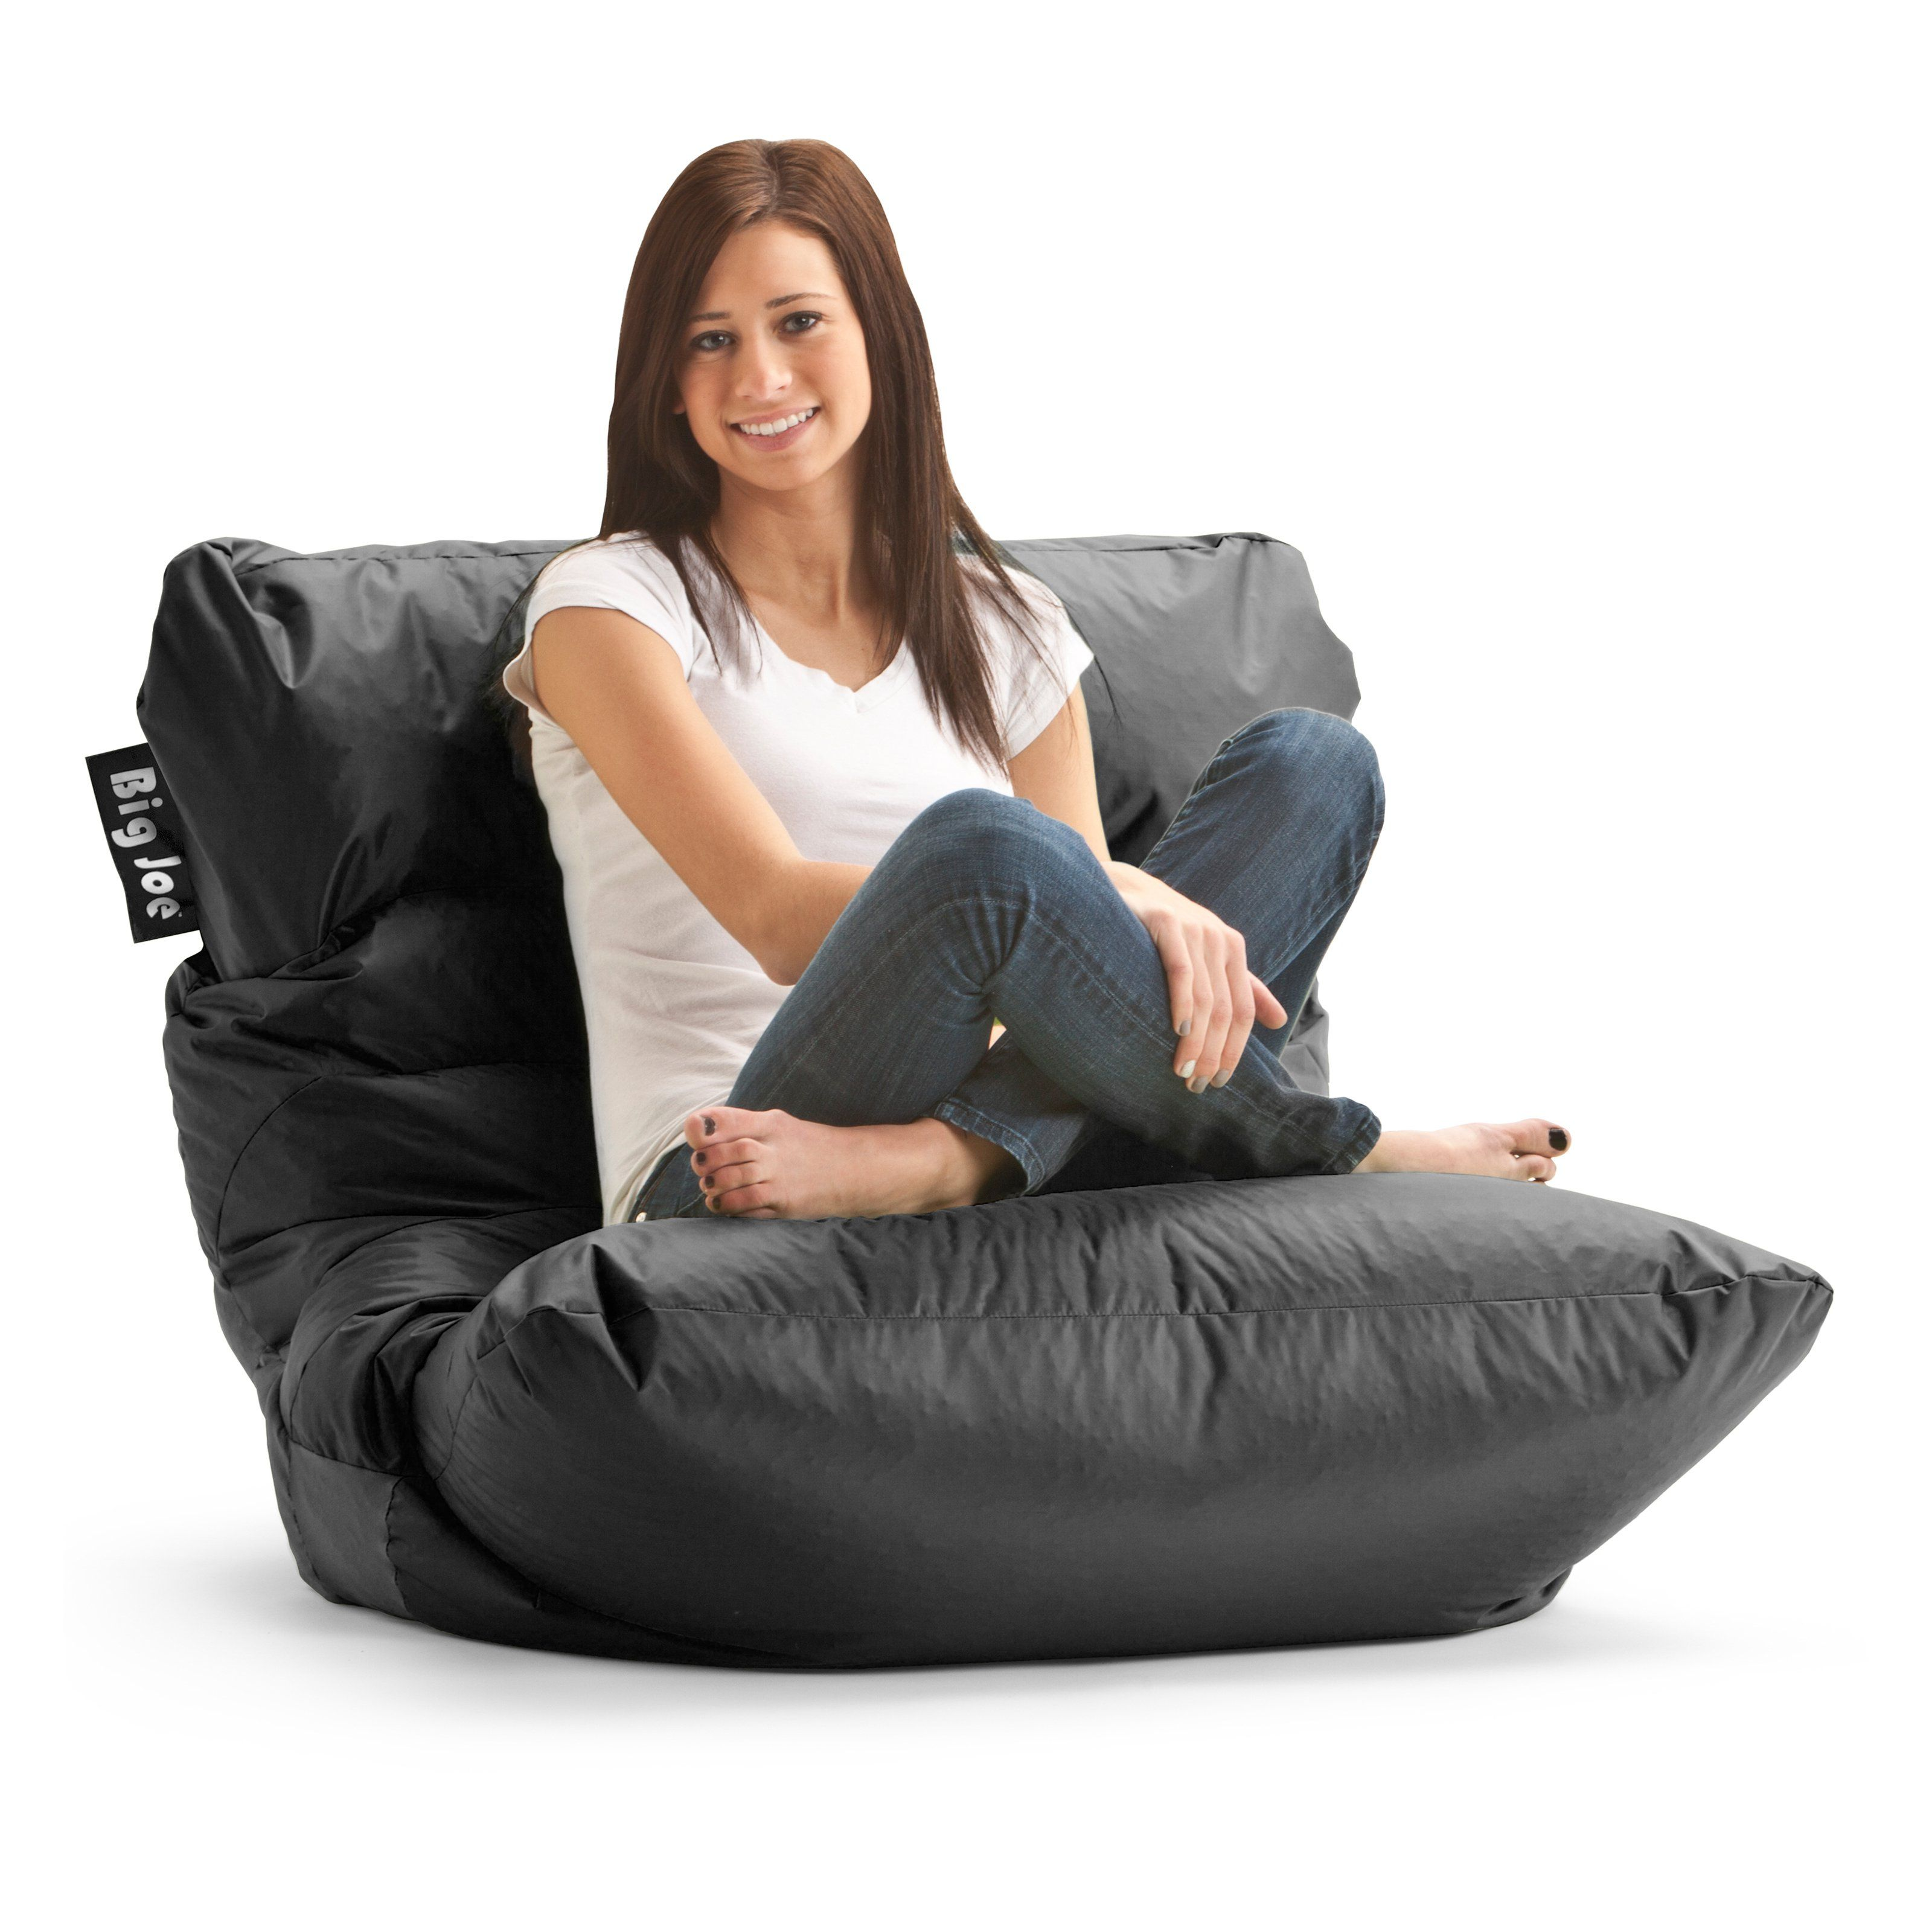 Fine Have To Have It Big Joe Roma Bean Bag Chair 55 33 Inzonedesignstudio Interior Chair Design Inzonedesignstudiocom